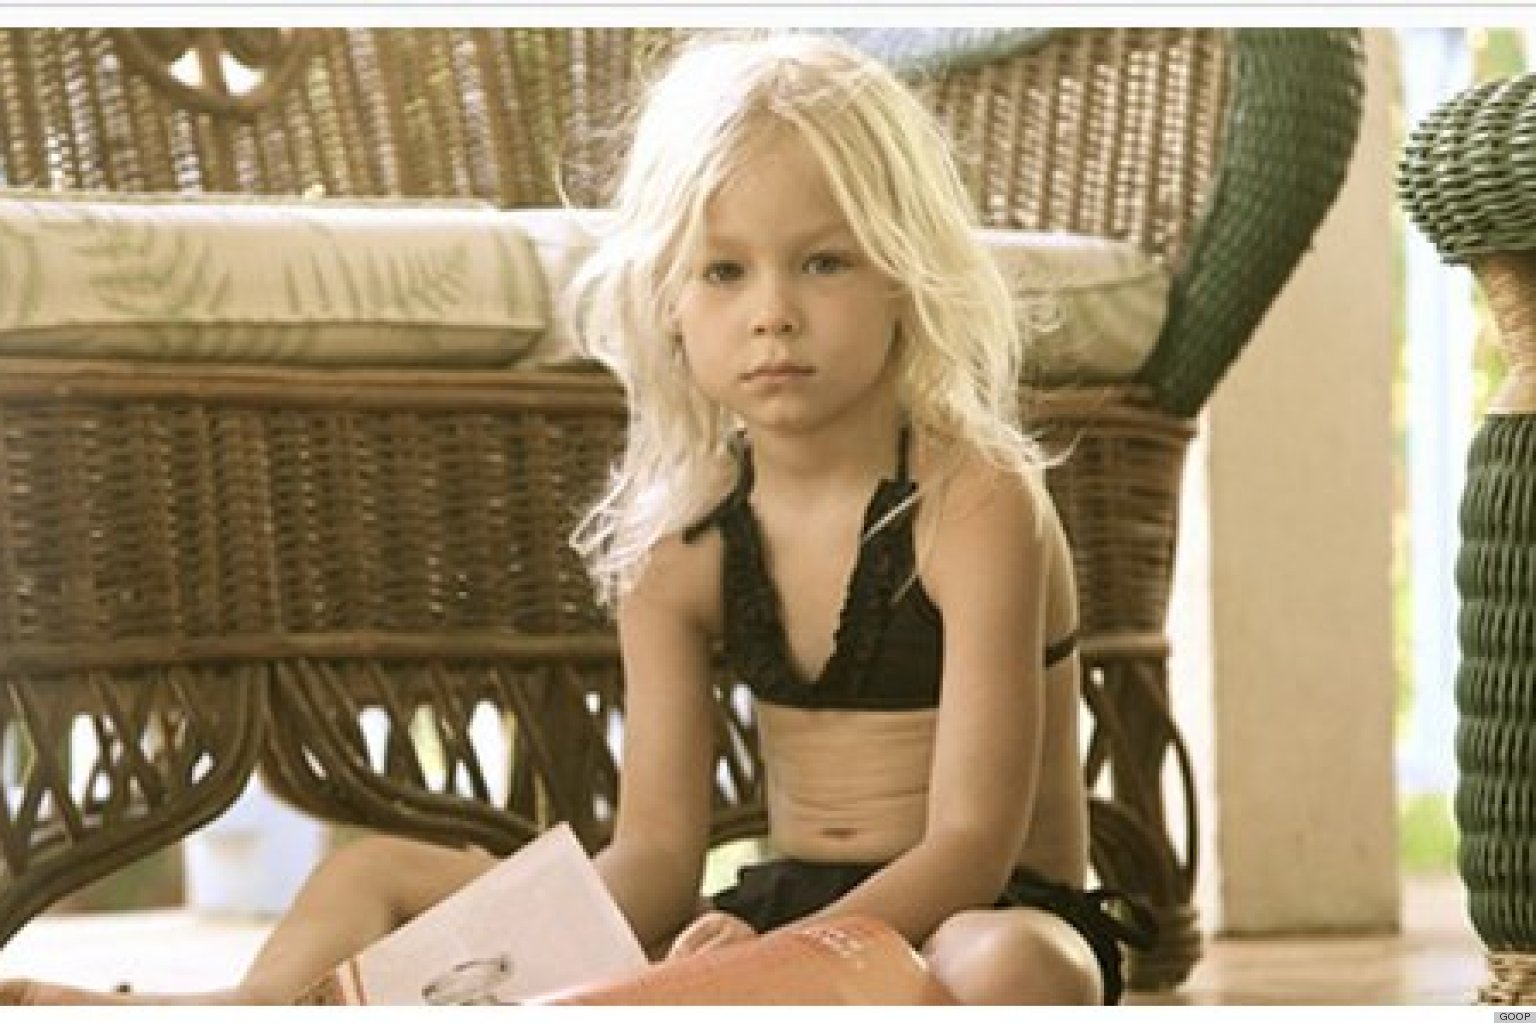 GWYNETH-PALTROW-KIDS-BIKINIS-facebook.jpg